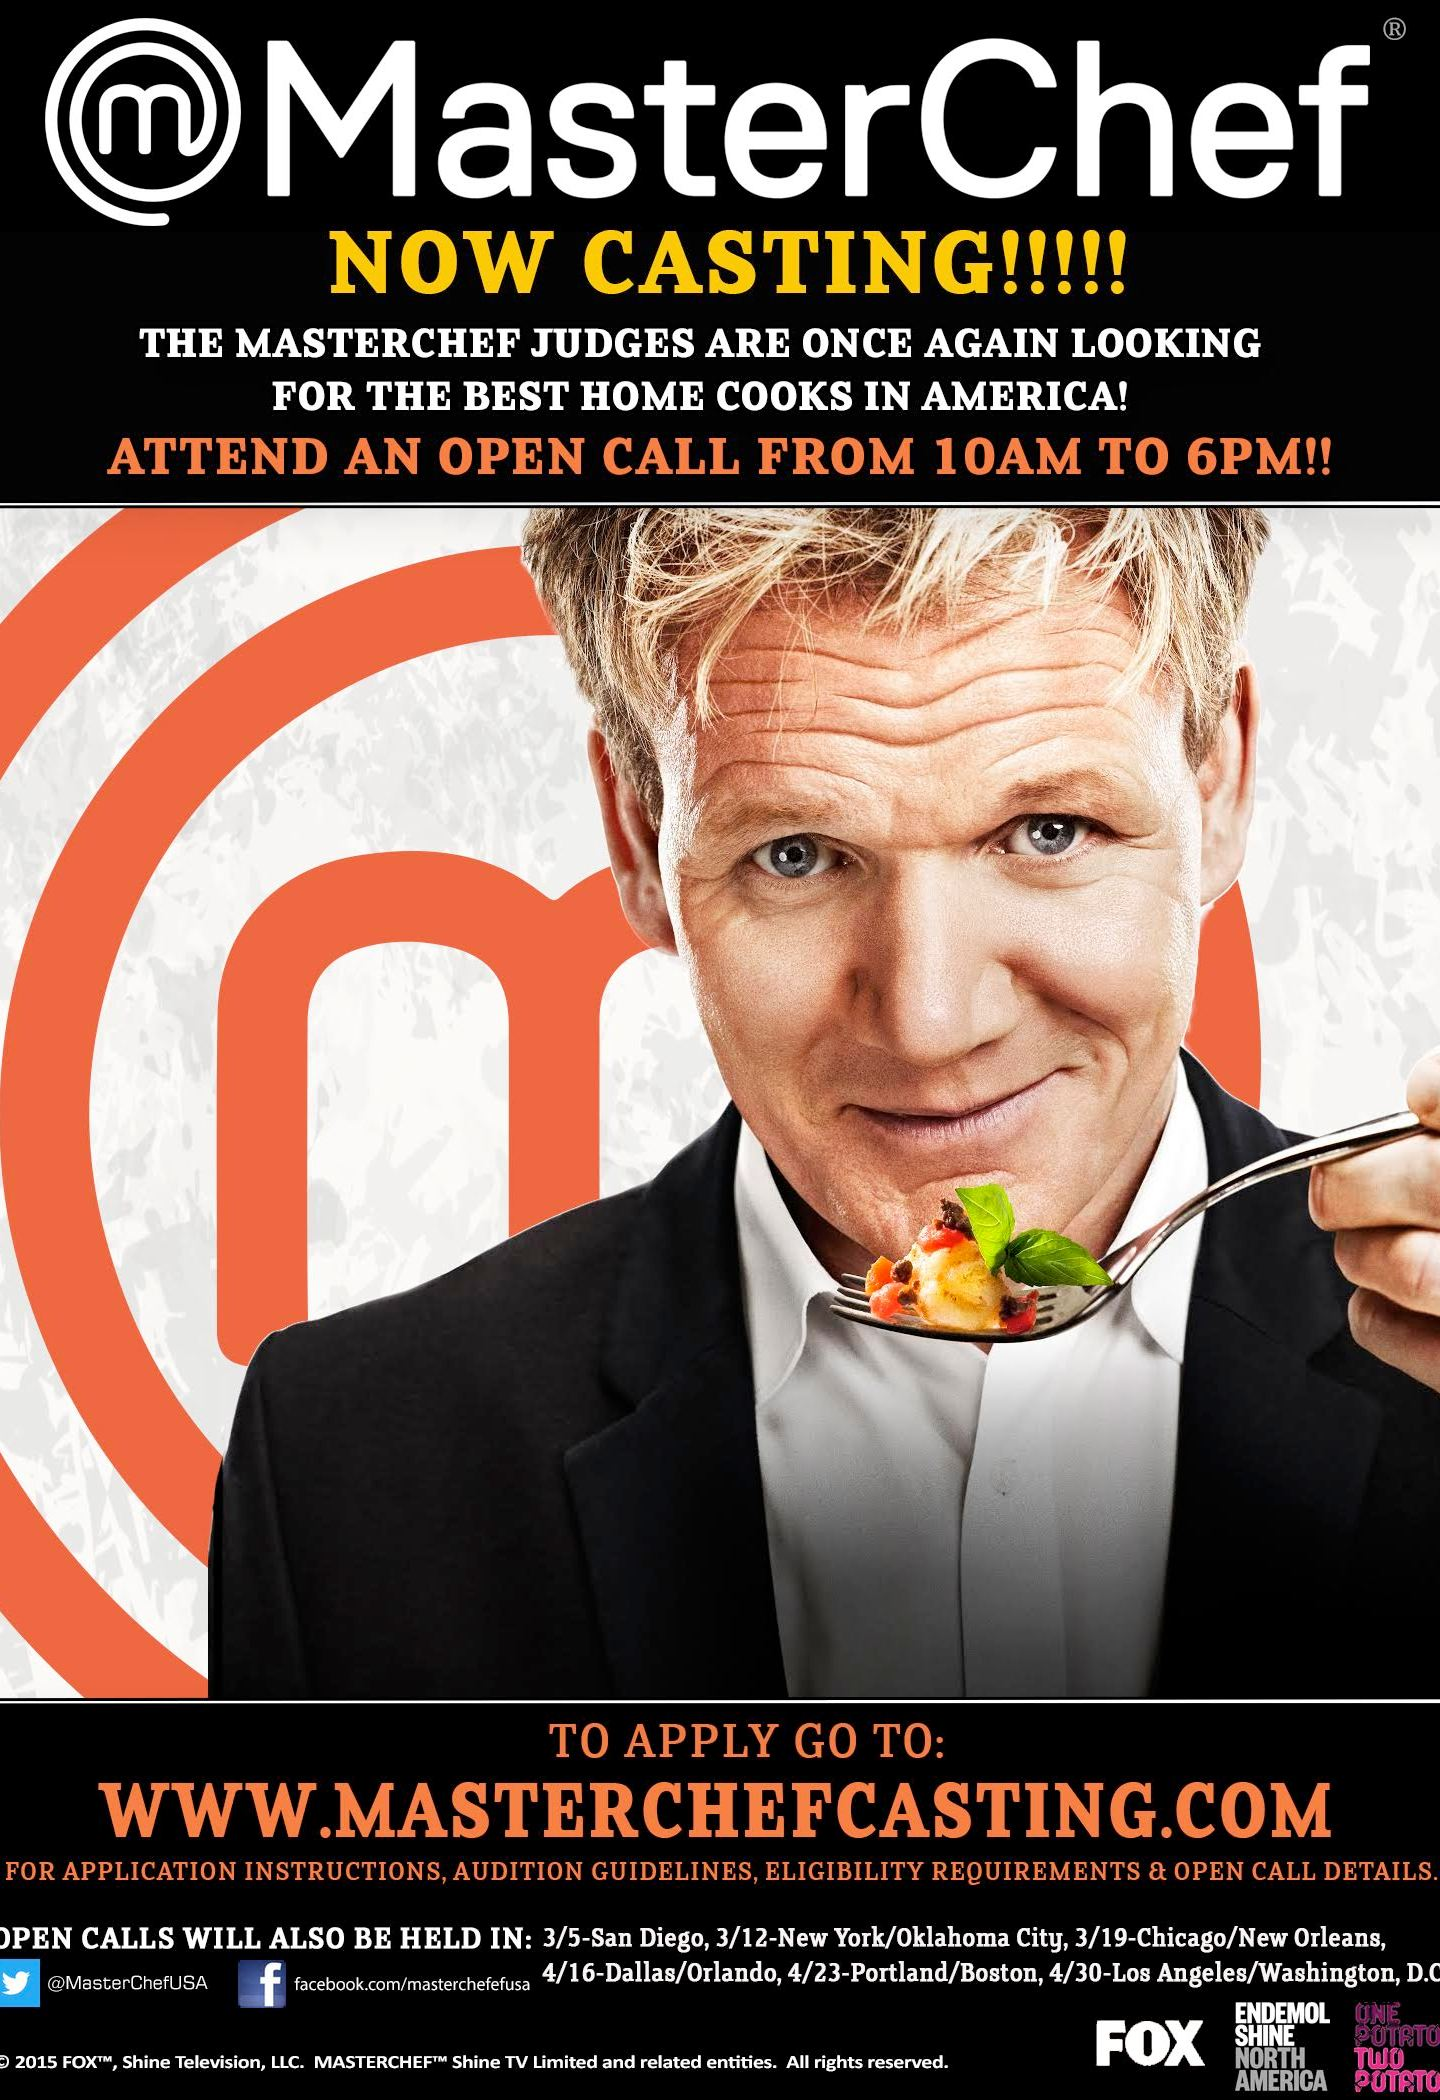 "MASTERCHEF"" Season 8 begins latest search with open casting"